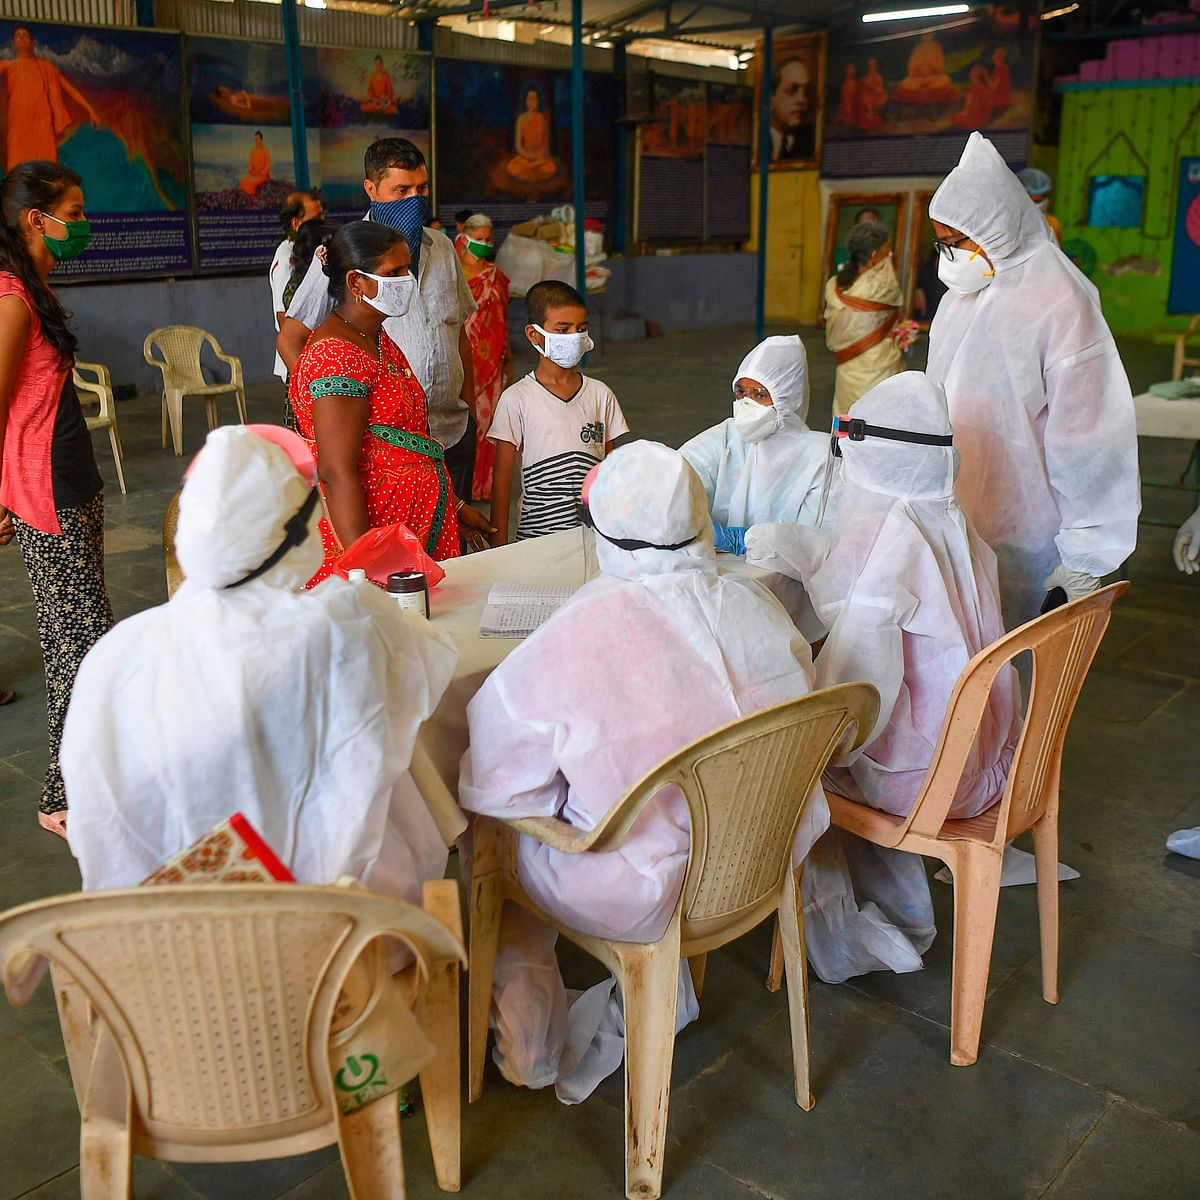 Coronavirus in Pune: With 2098 new COVID-19 cases on Tuesday, tally jumps to 94,978; death toll at 2,185